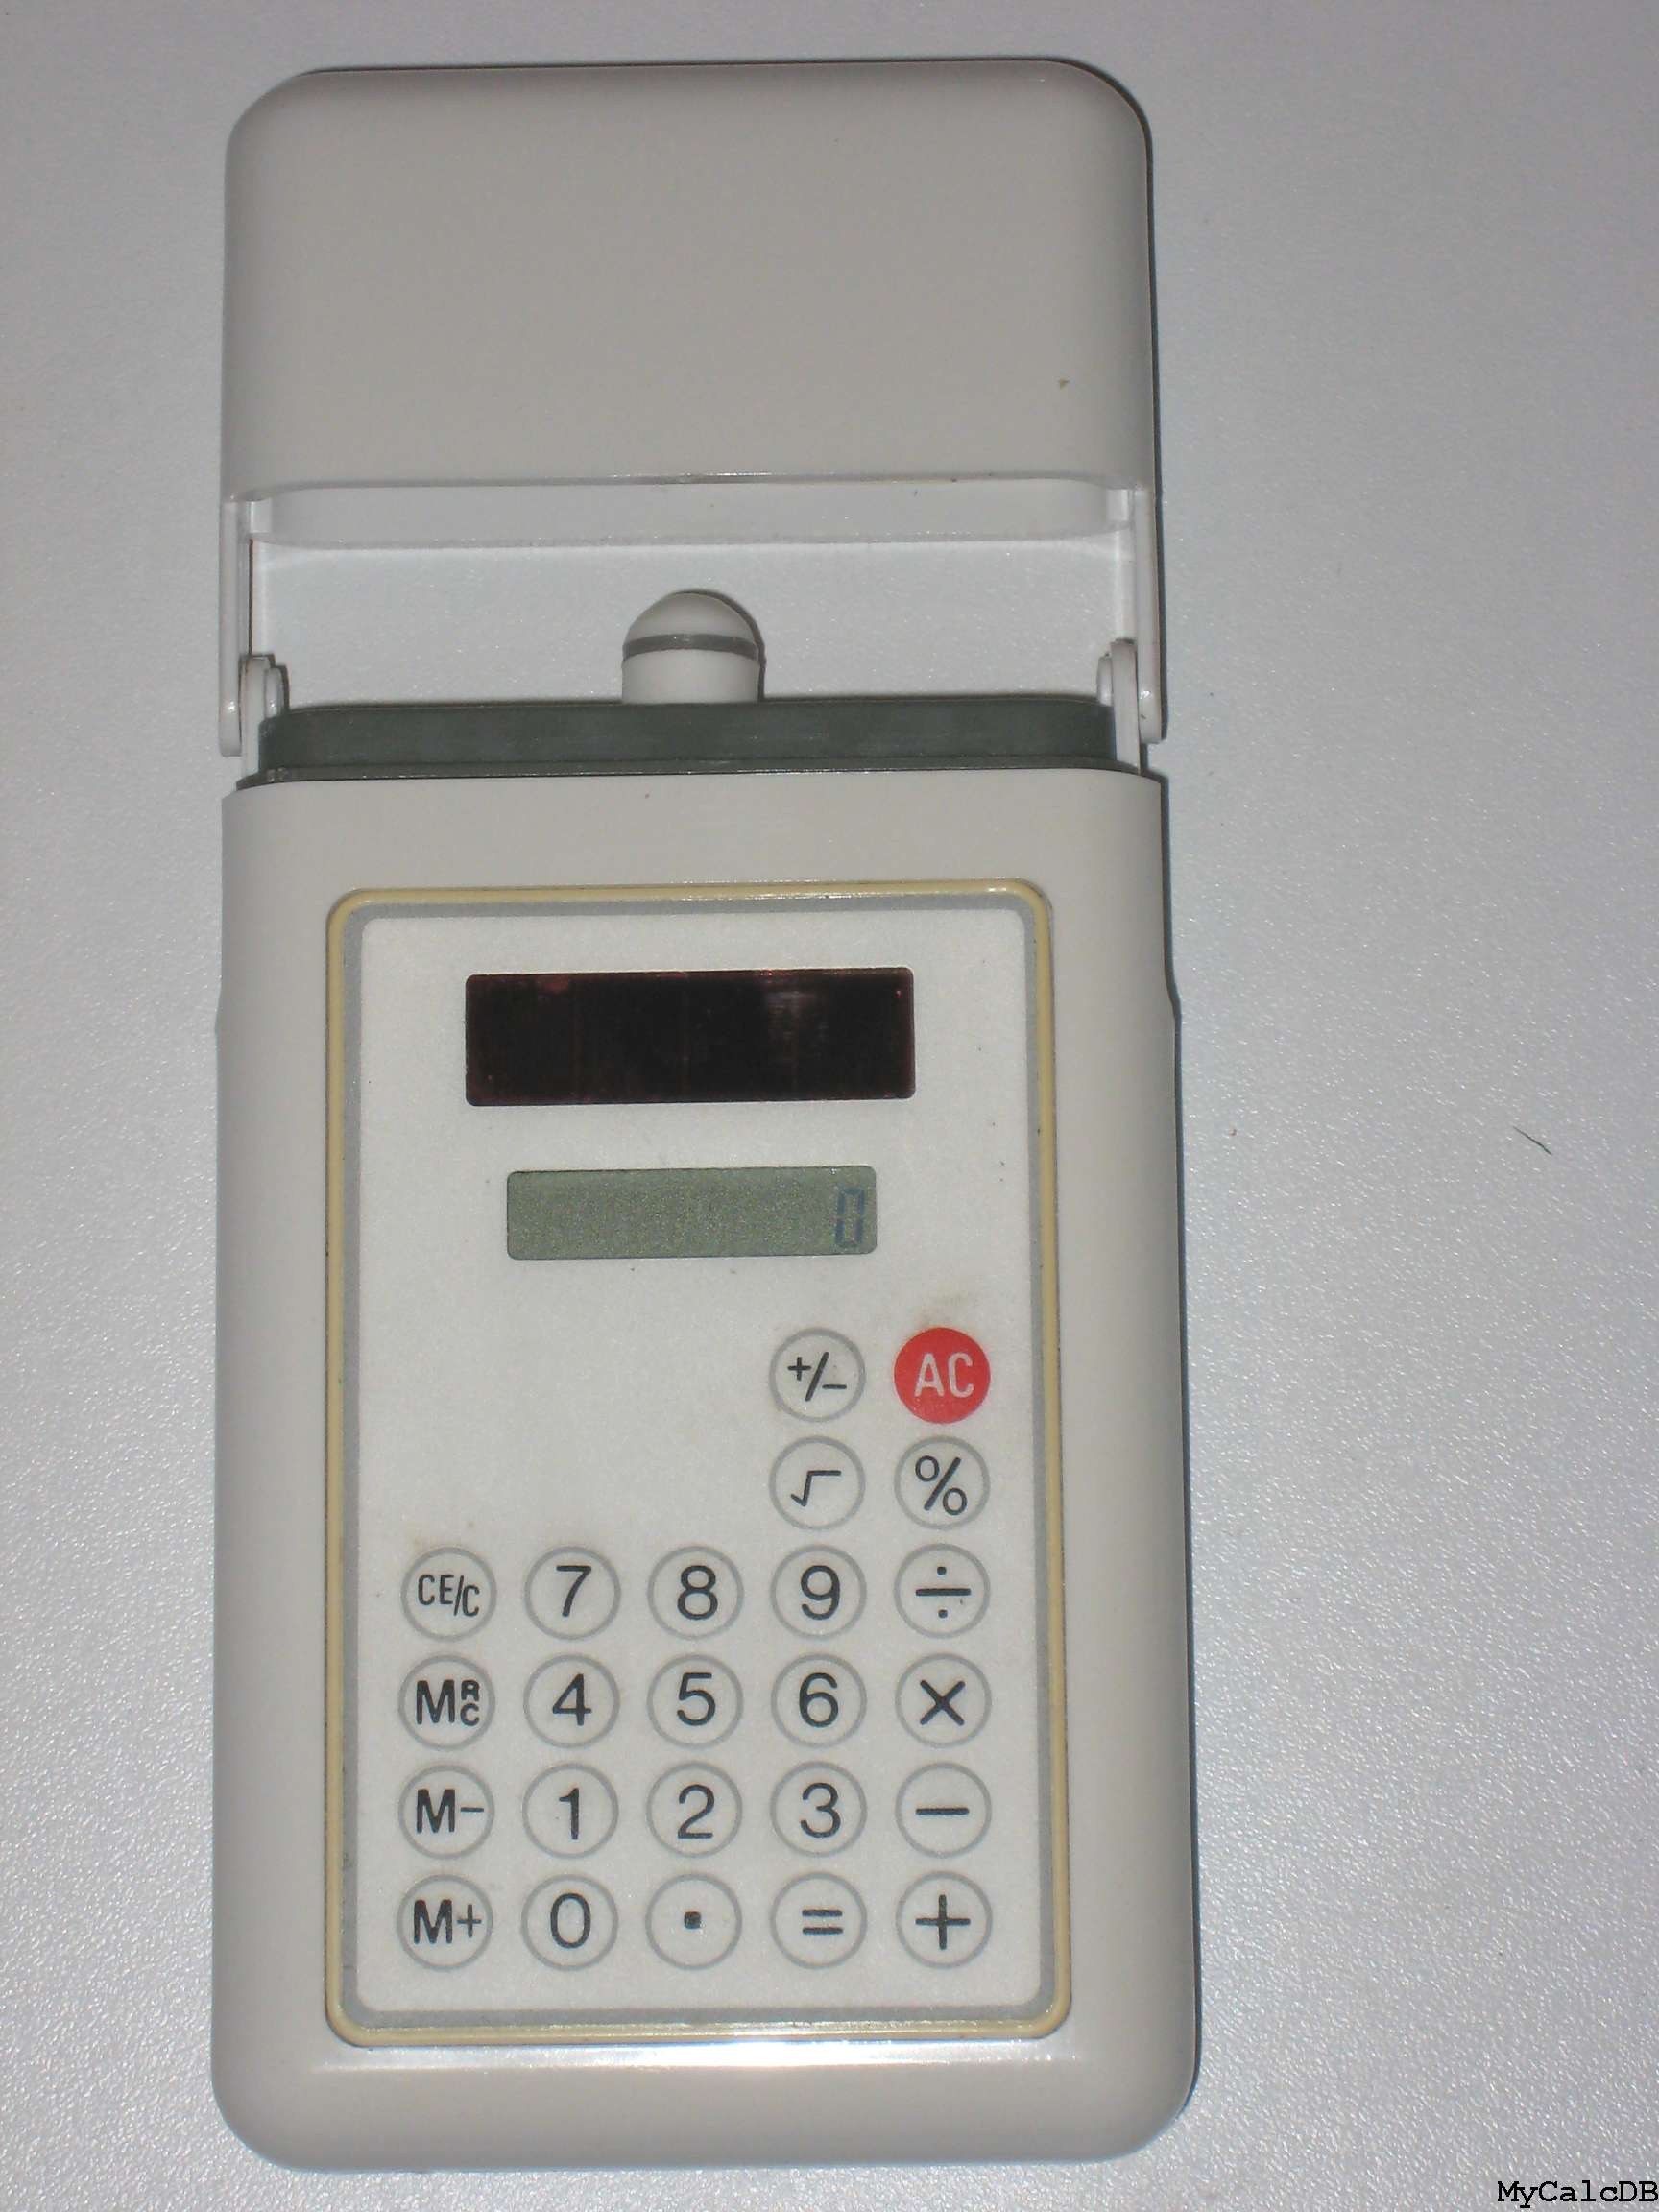 No Brand name pen holder calculator